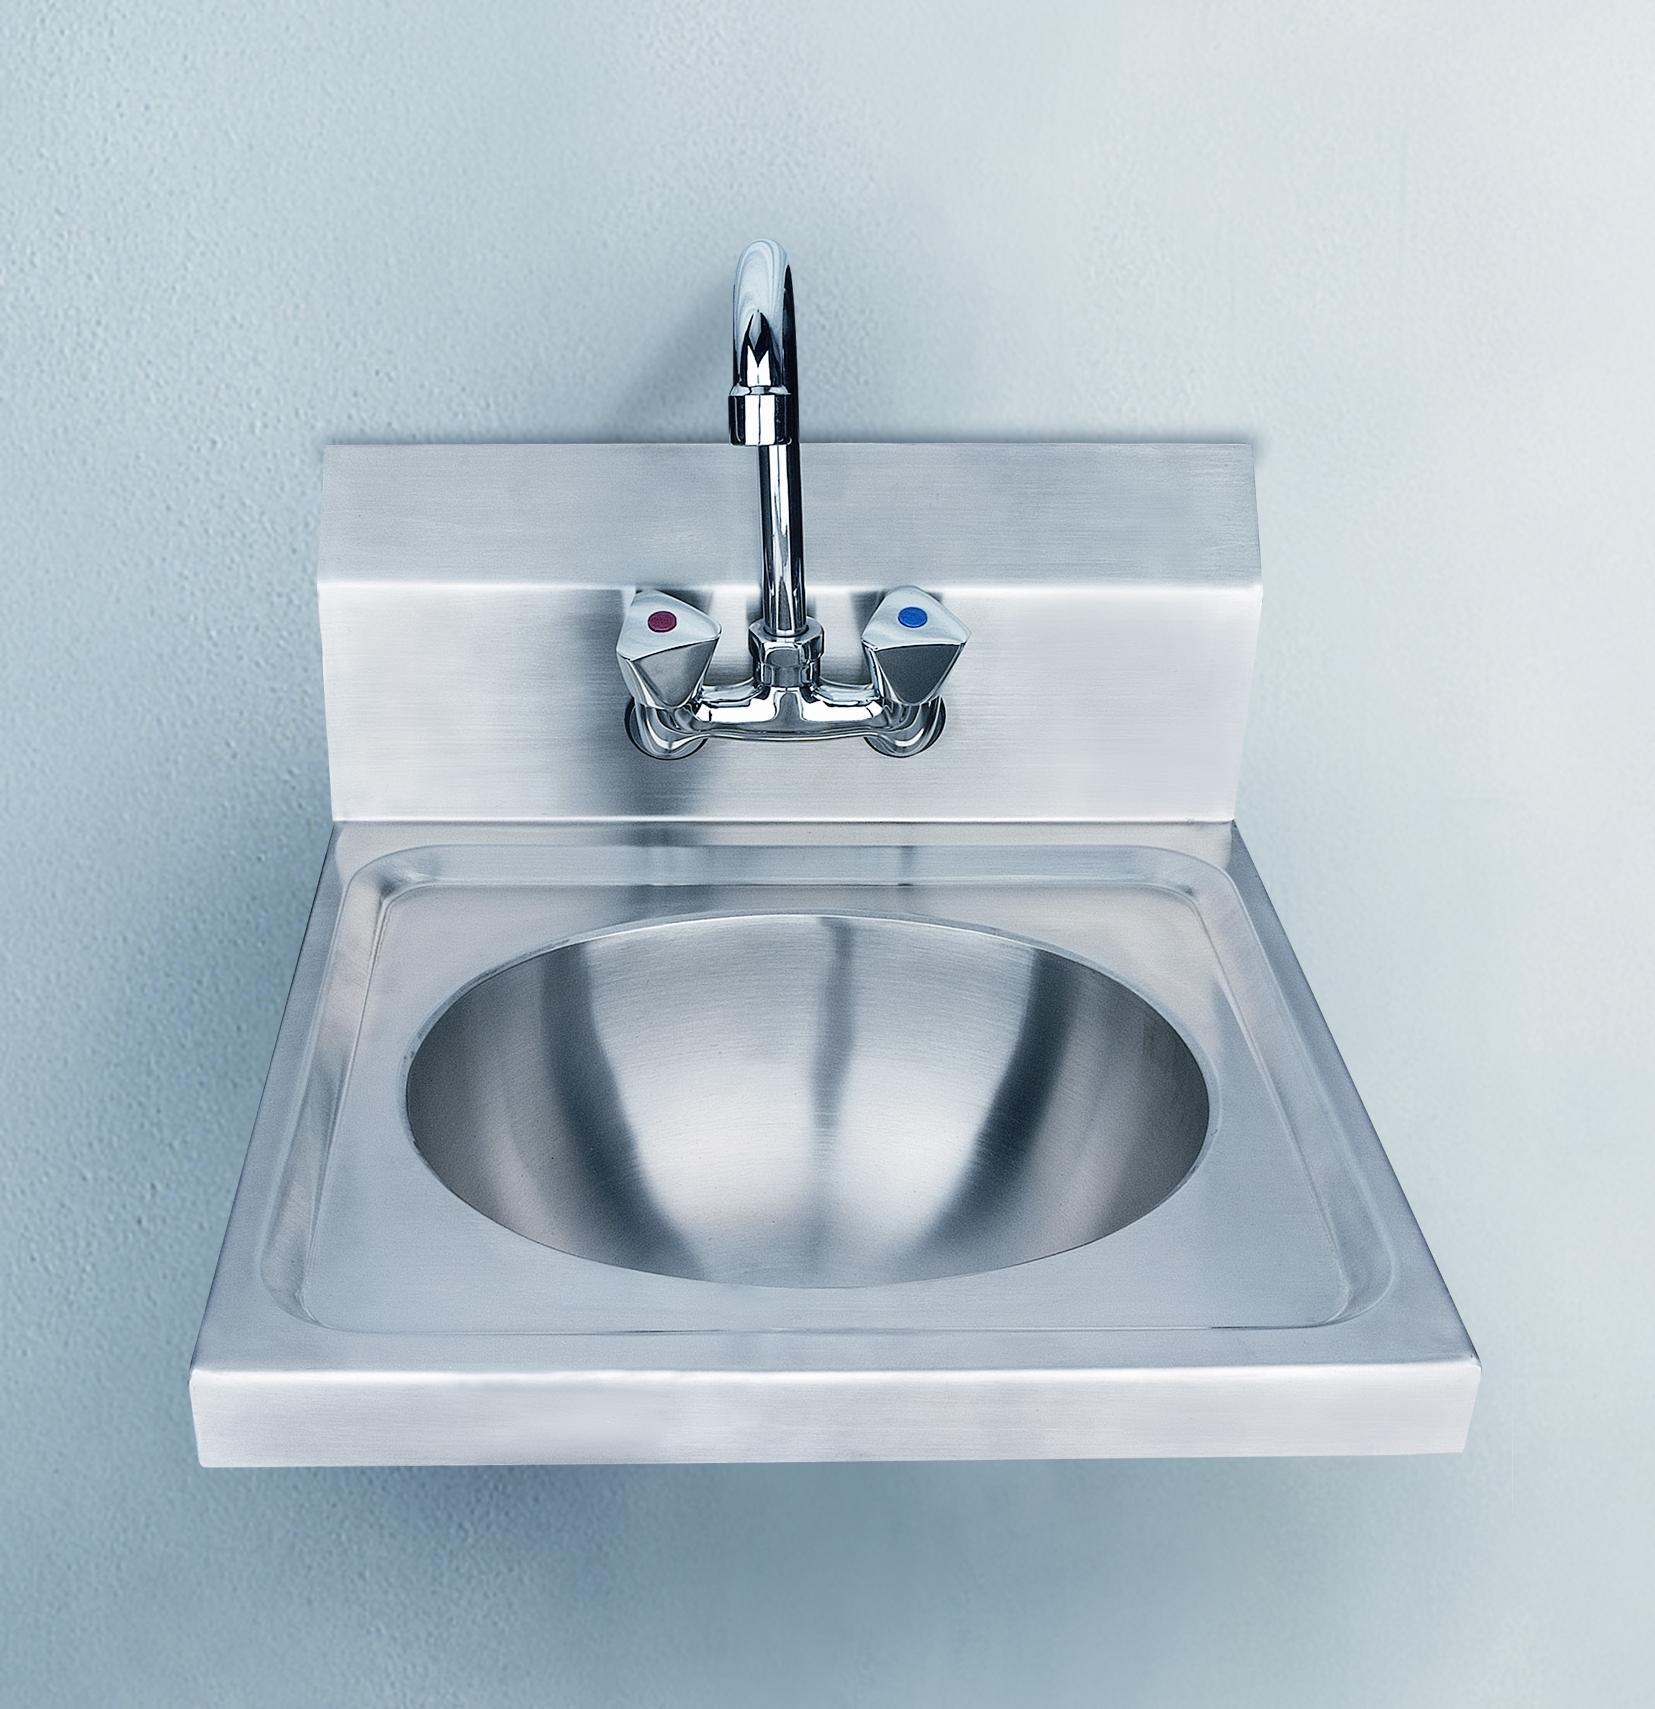 China Commercial Utility Sink, Kitchen Sink, Laundry Sink, Stainless ...